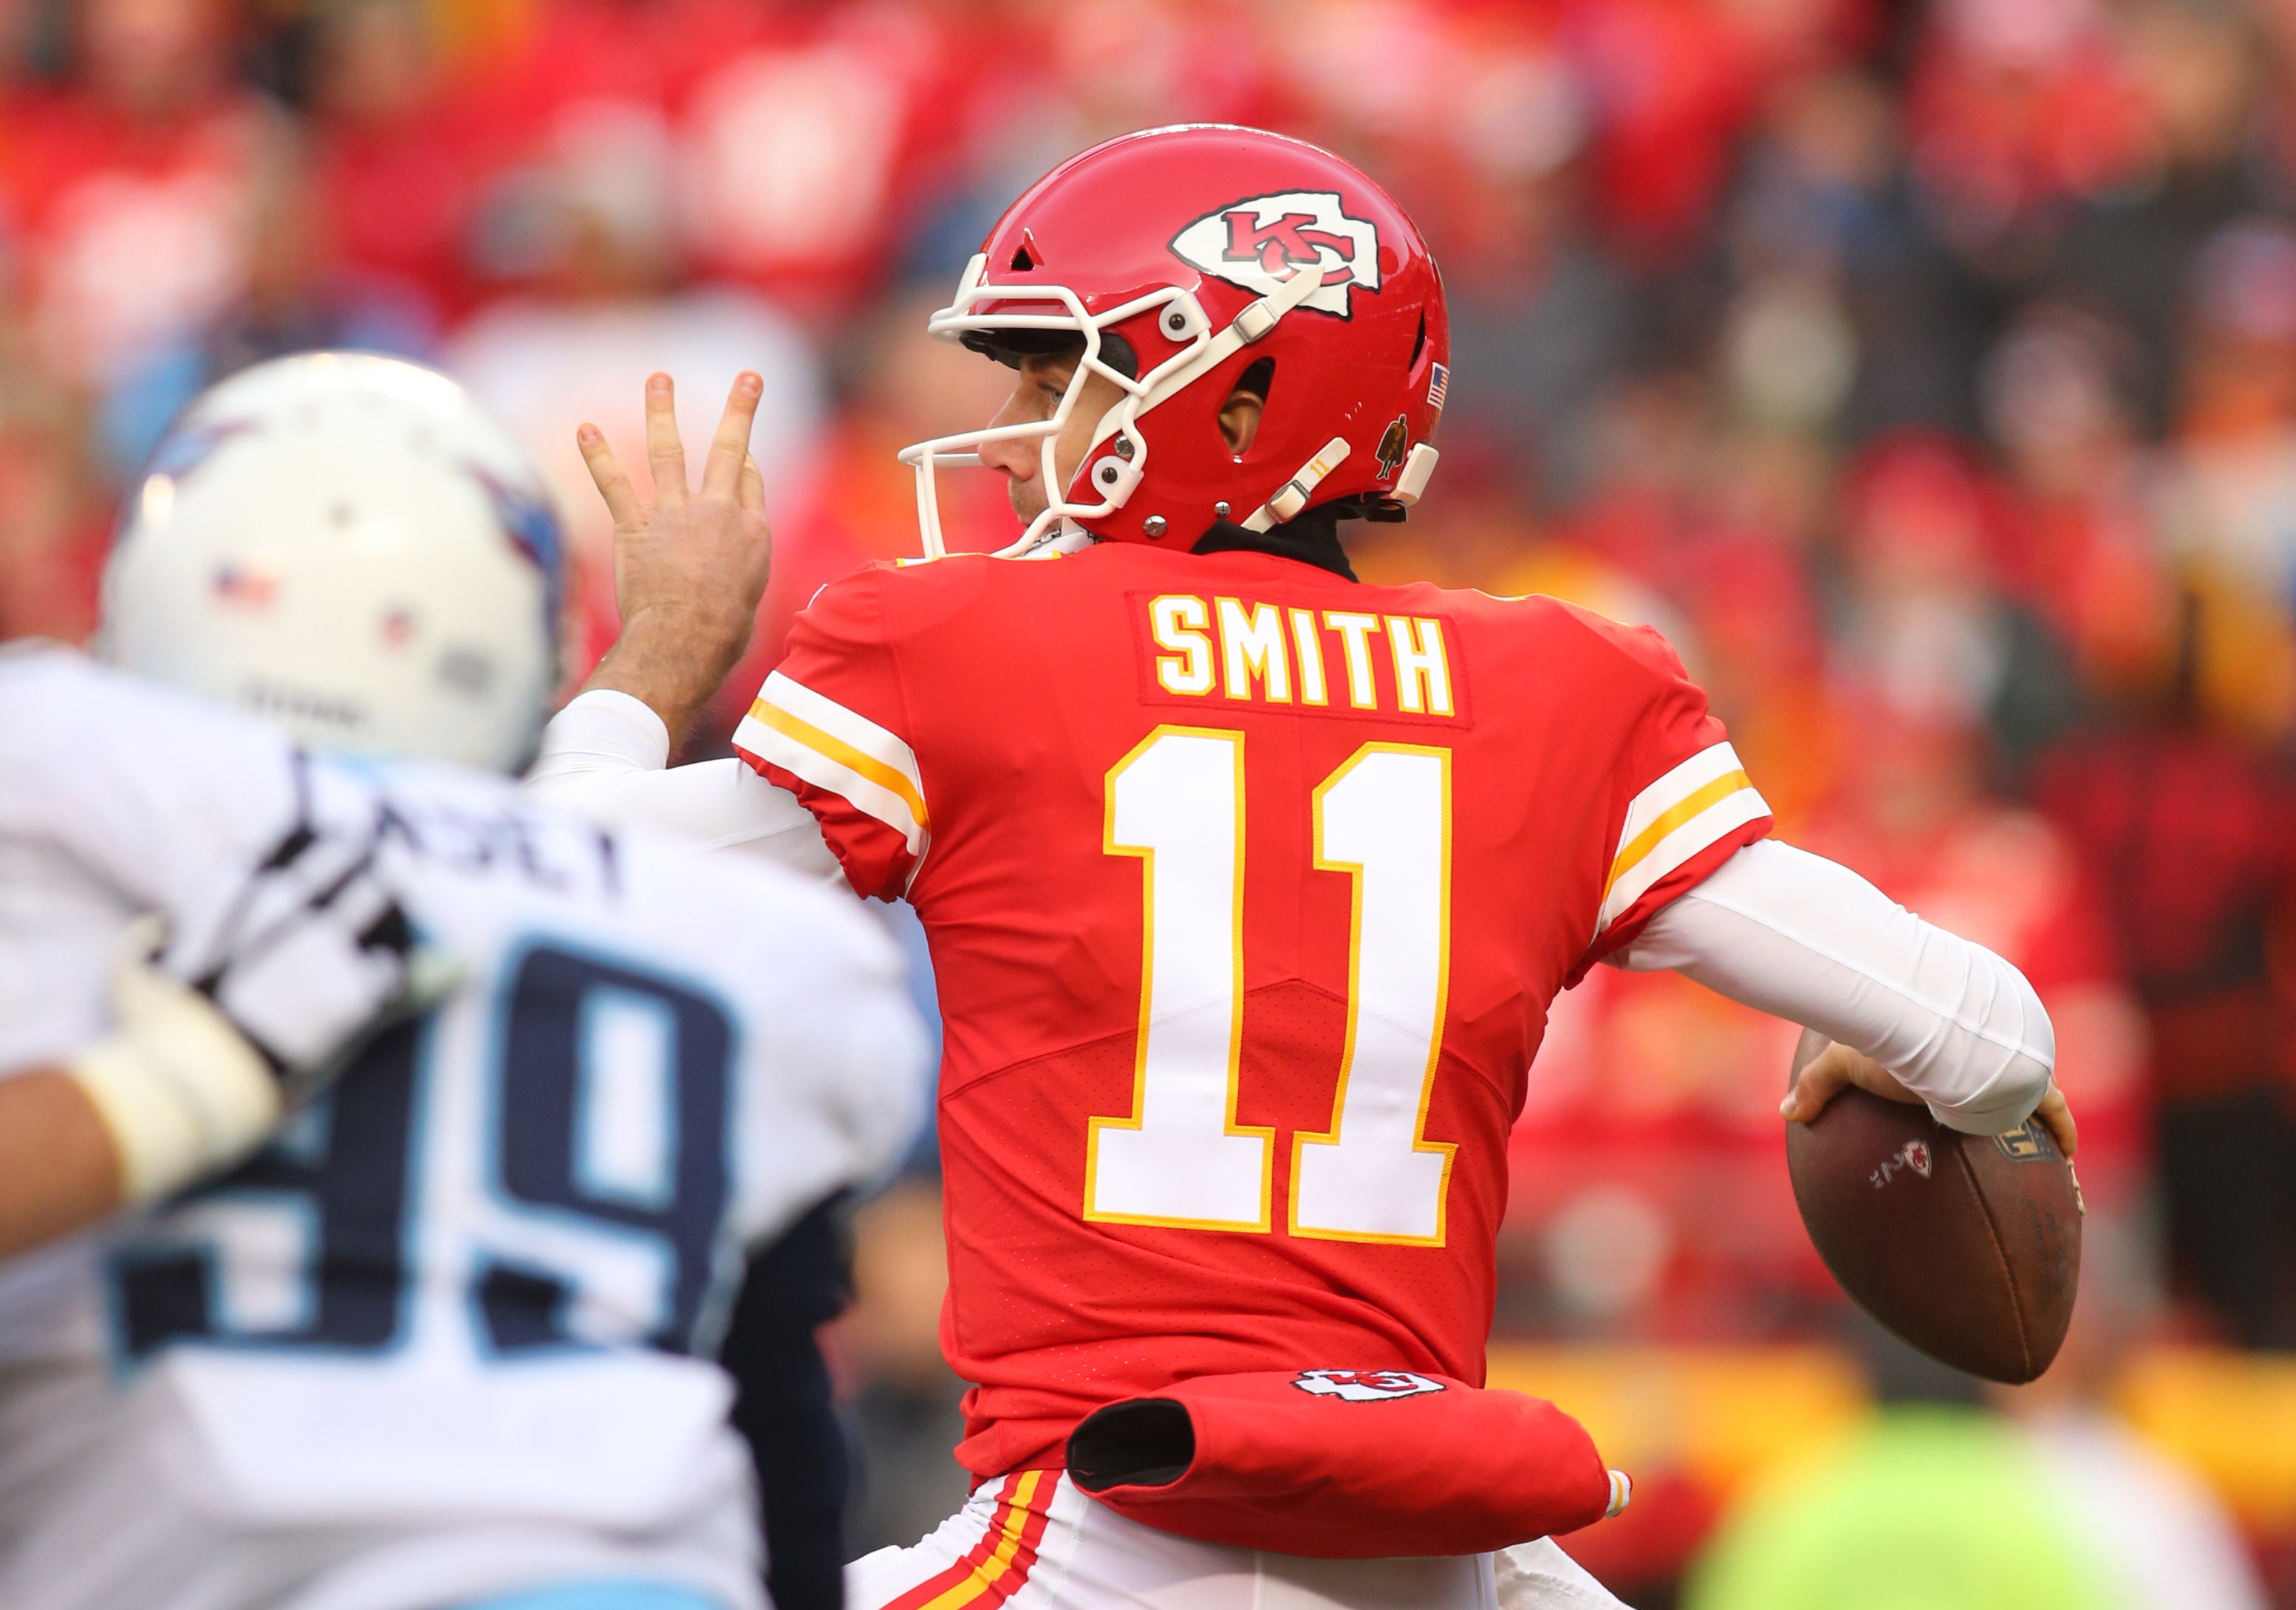 Hot A Fuller roster in Kansas City, Chiefs hit home run with Alex Smith  for cheap